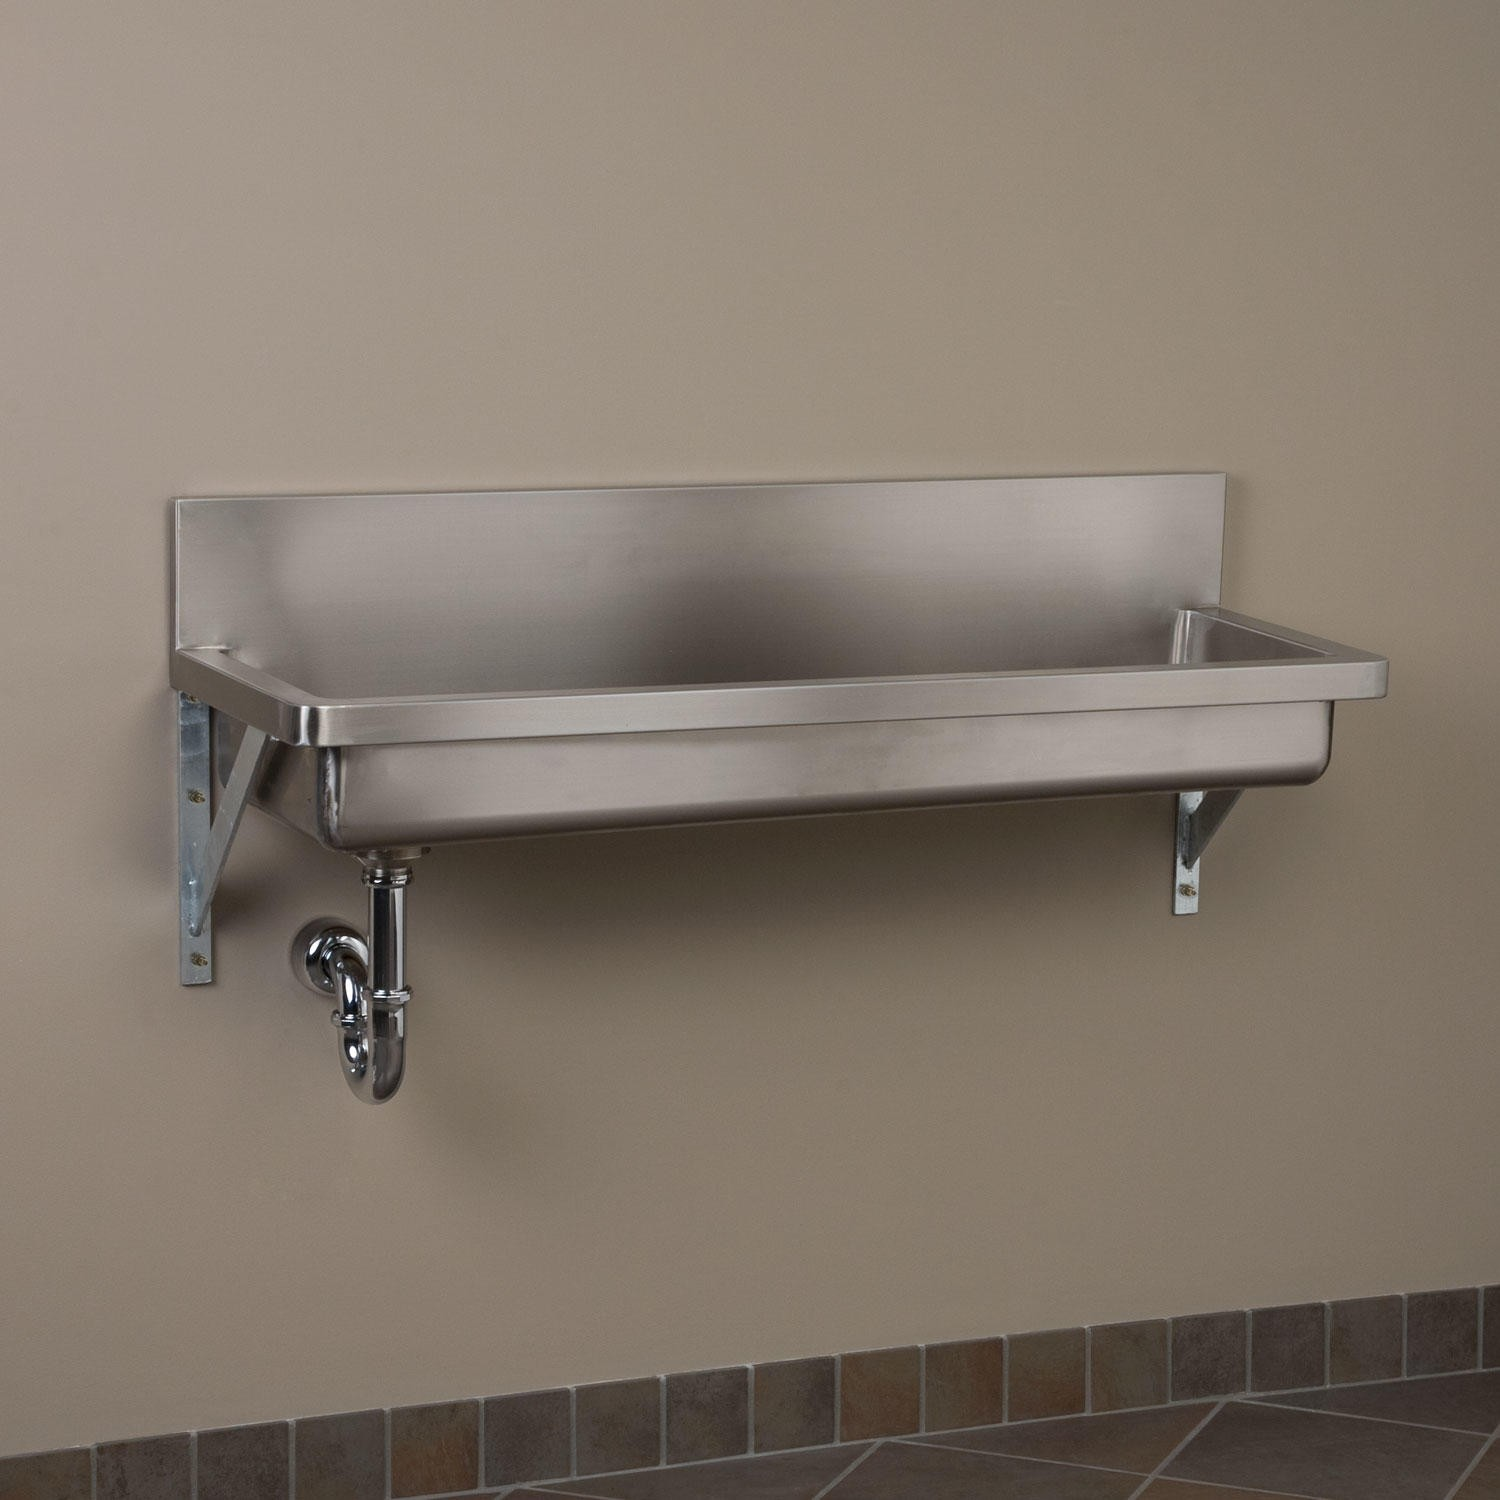 Truckload from Signature Hardware of Unmanifested Sinks, Faucets, Showers, Mirrors & More, Est. Retail $172,916, Erlanger, KY